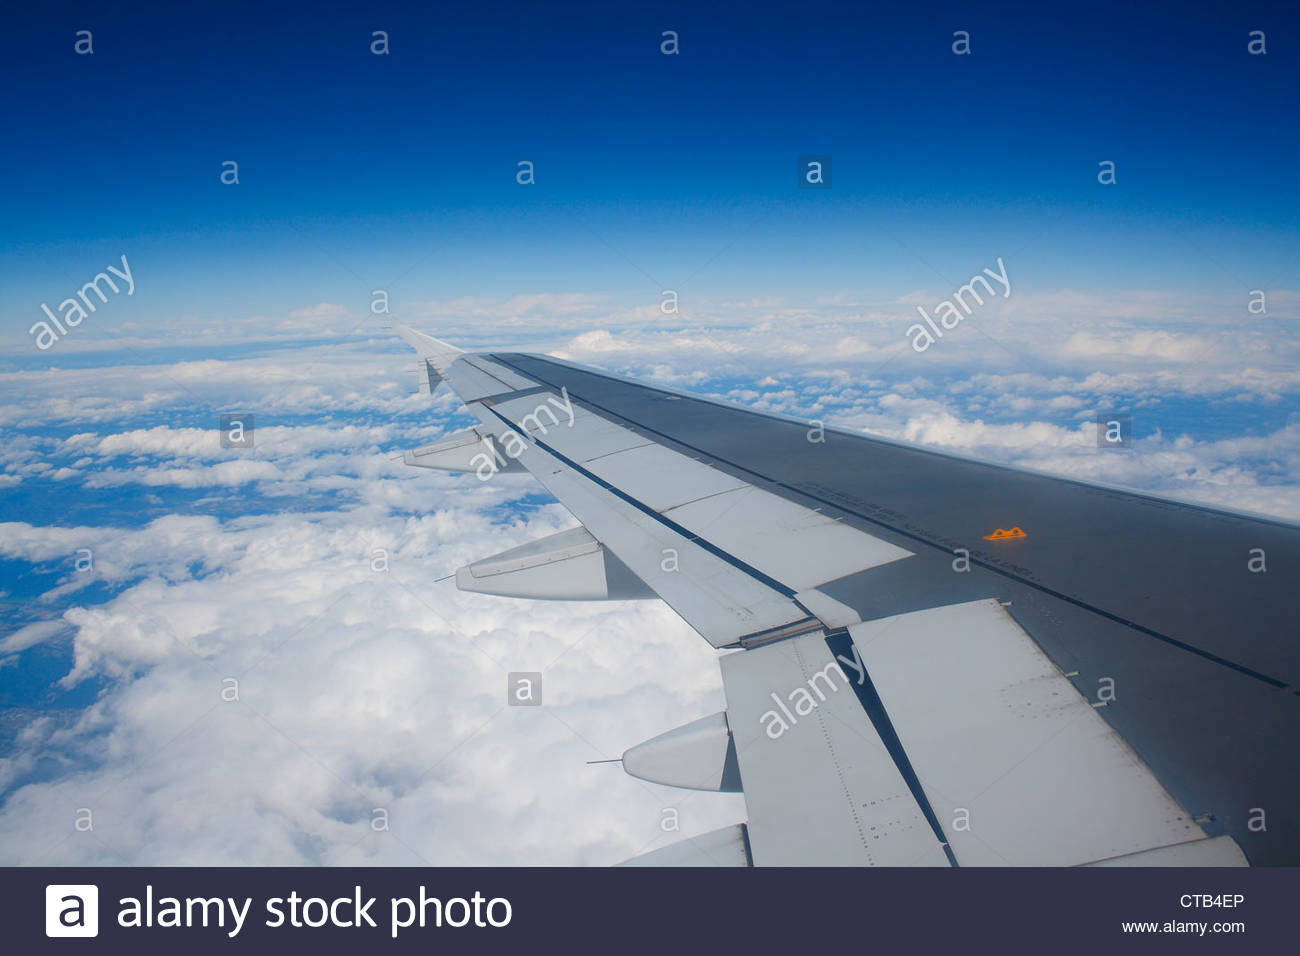 Airplane wing, flying over france. - Stock Image